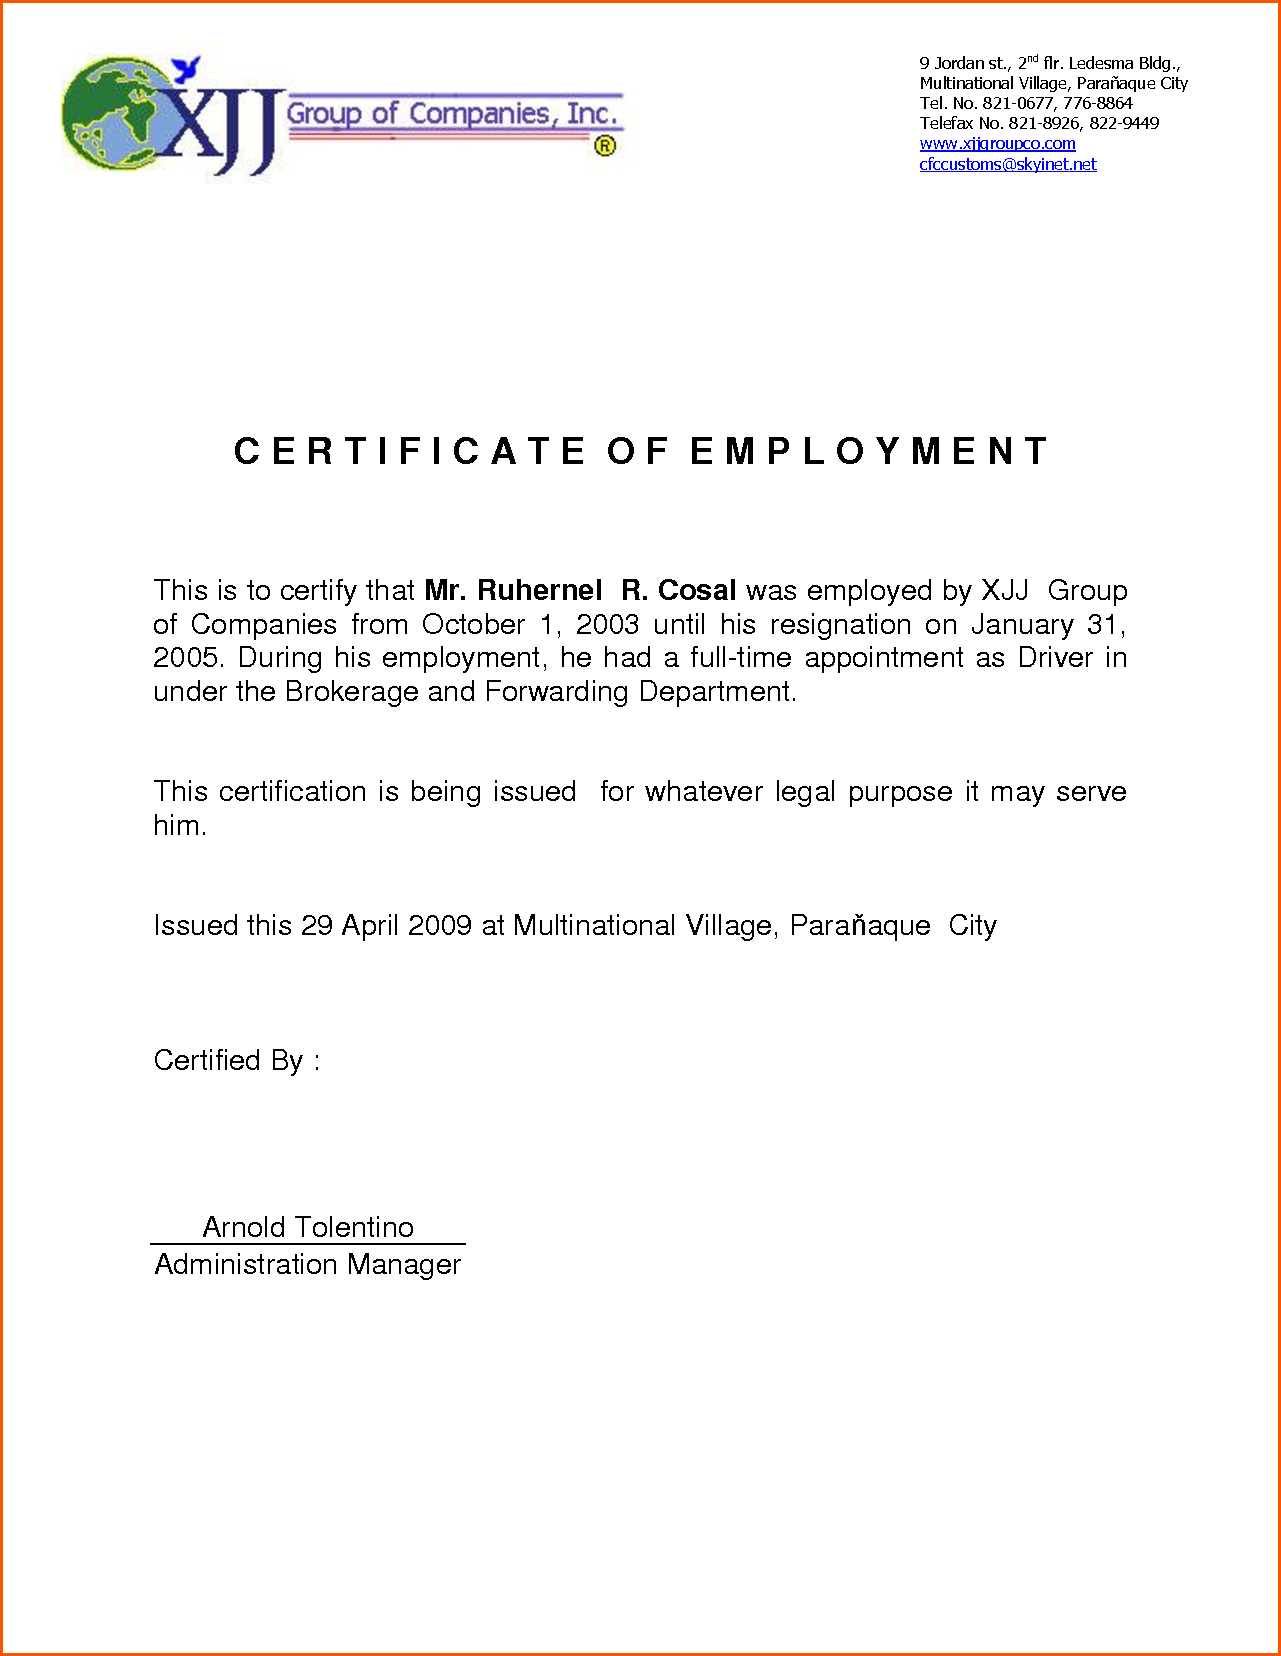 employment certification keywords and suggestions tags